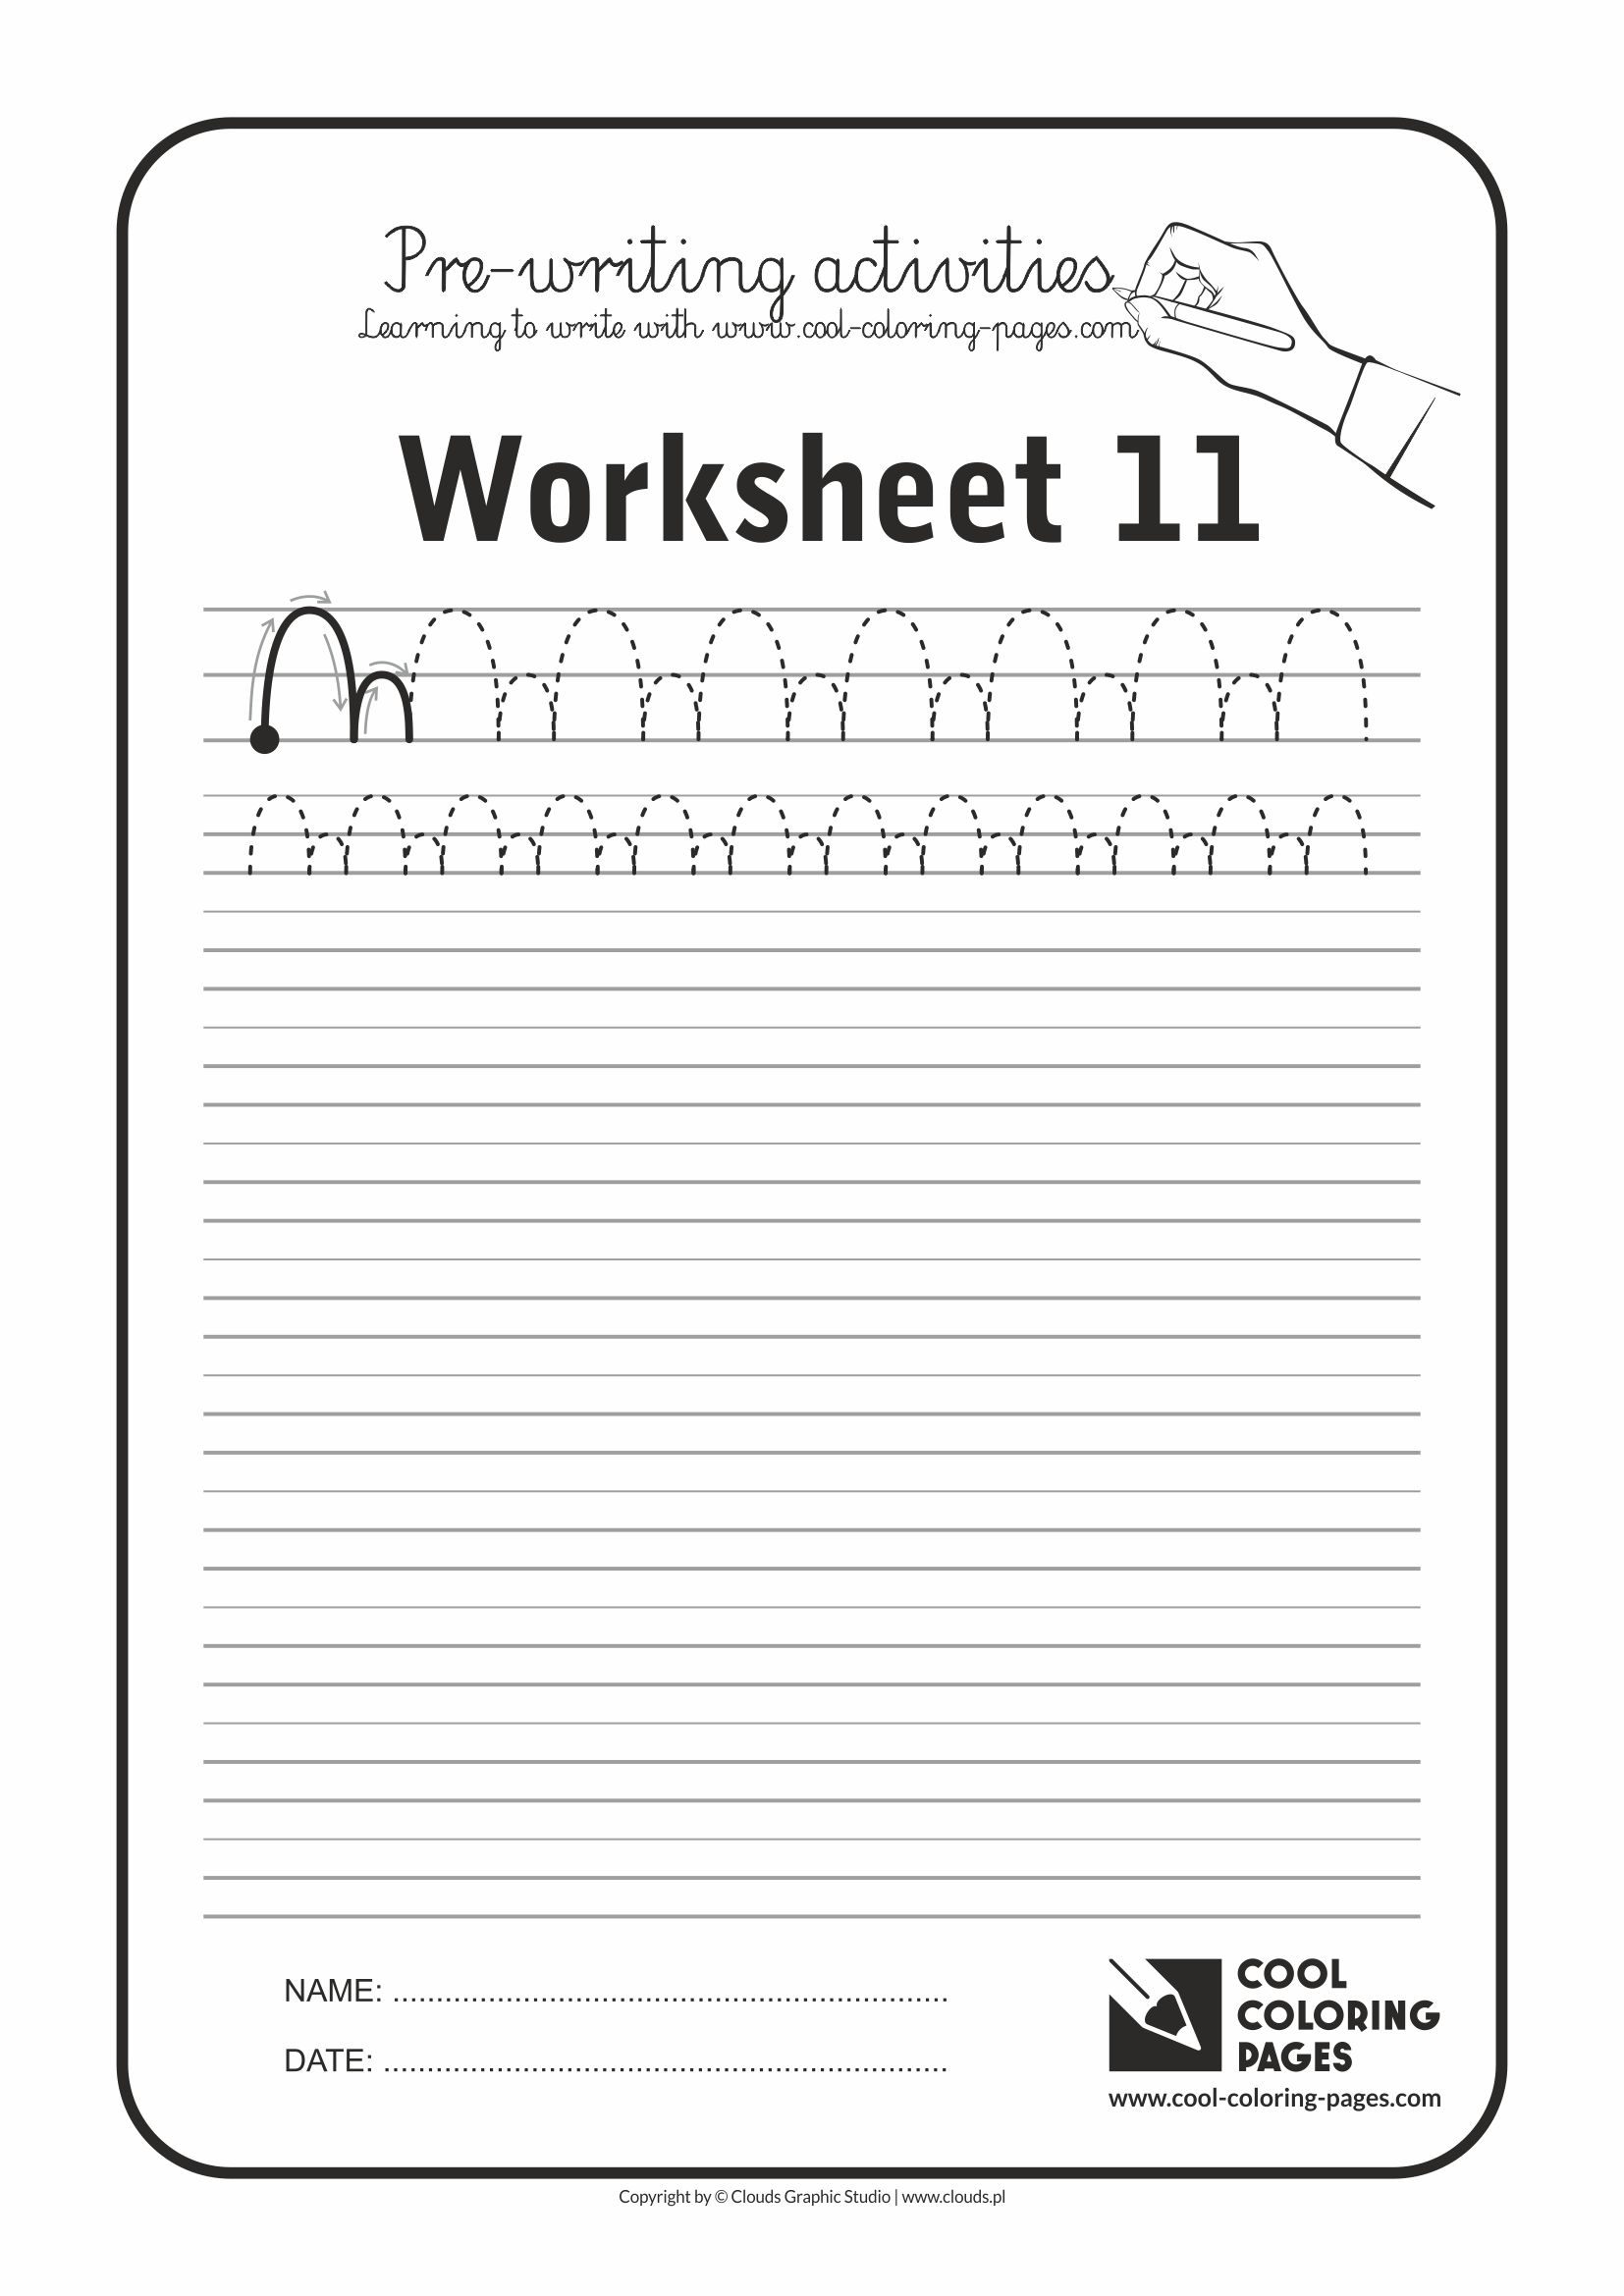 Cool Coloring Pages / Pre-writing activities / Worksheet no.11